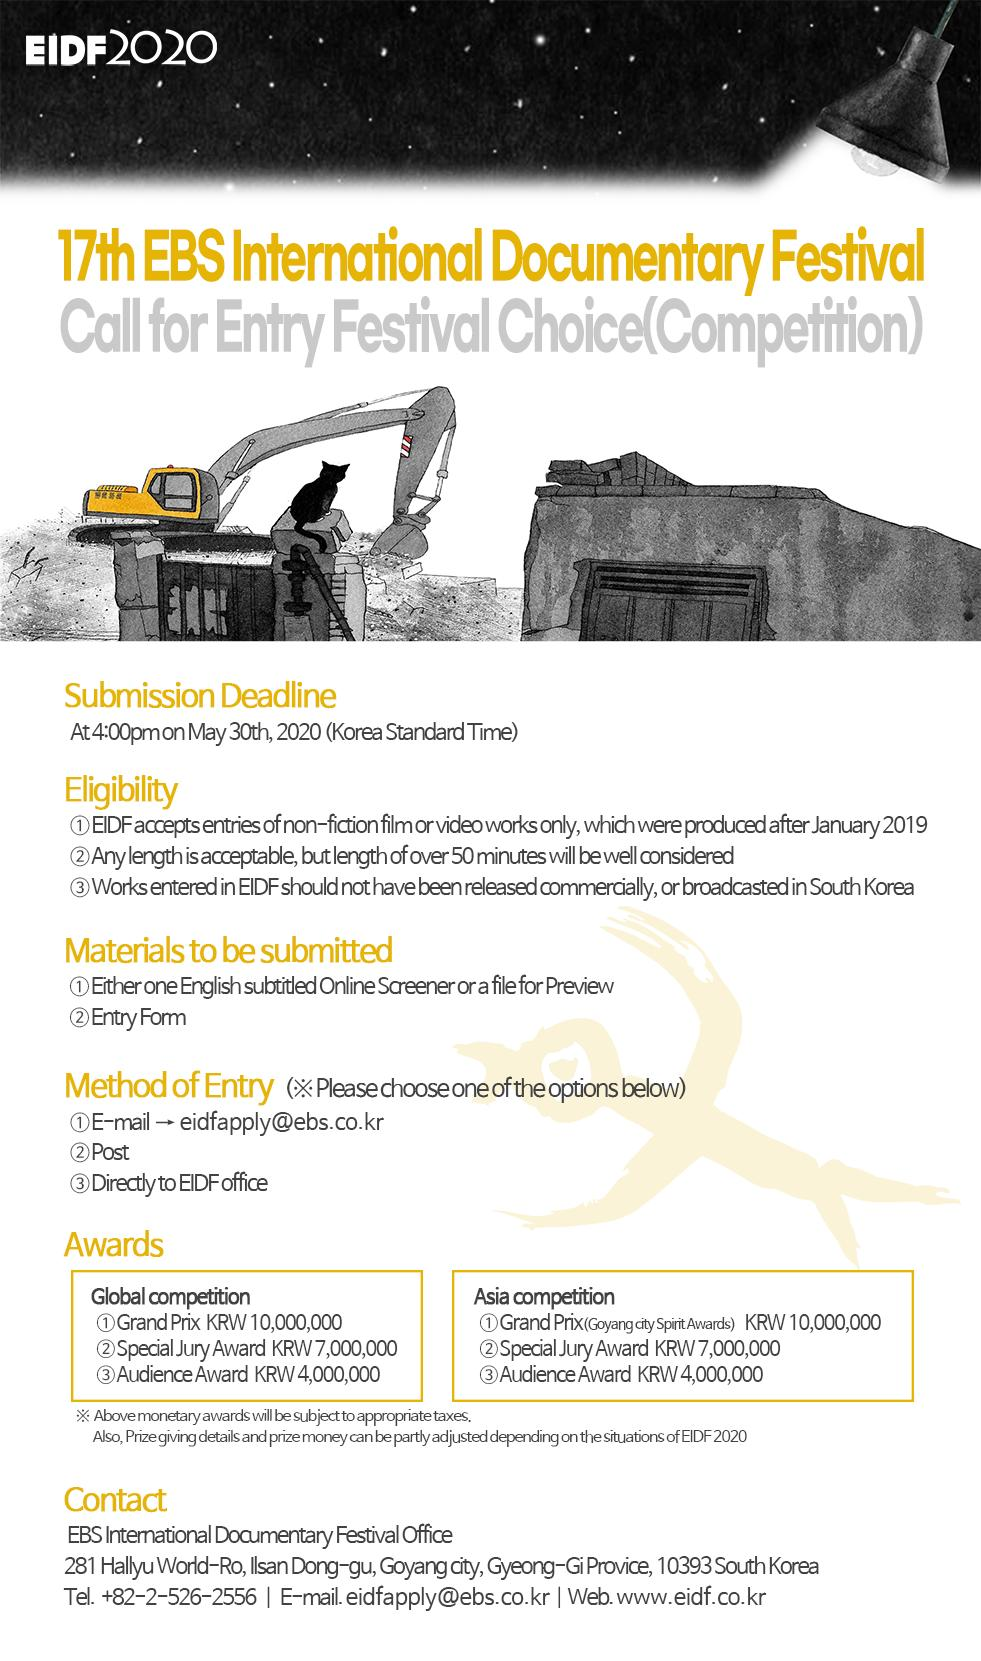 The 17th EBS International Documentary Festival (EIDF 2020) Entry Requirements